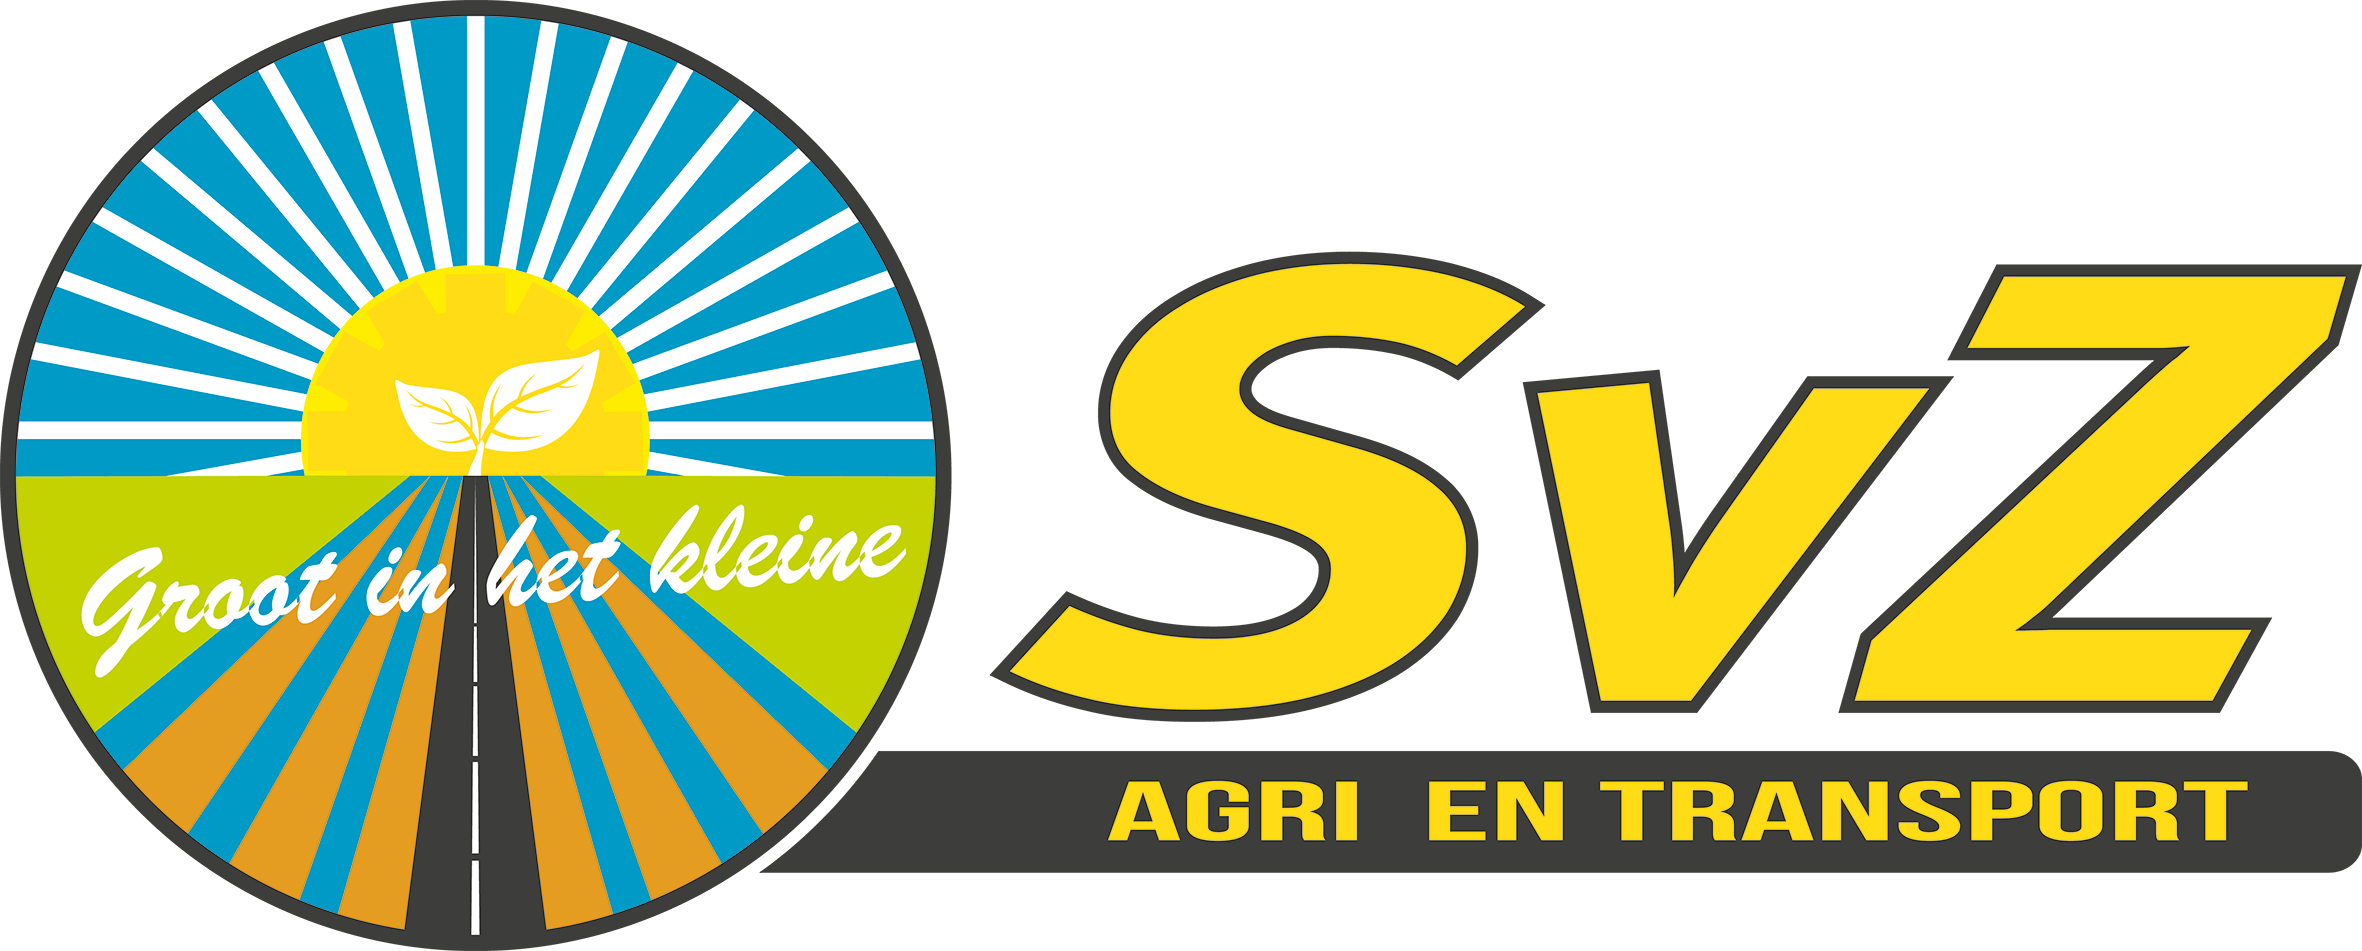 SvZ Agri en Transport